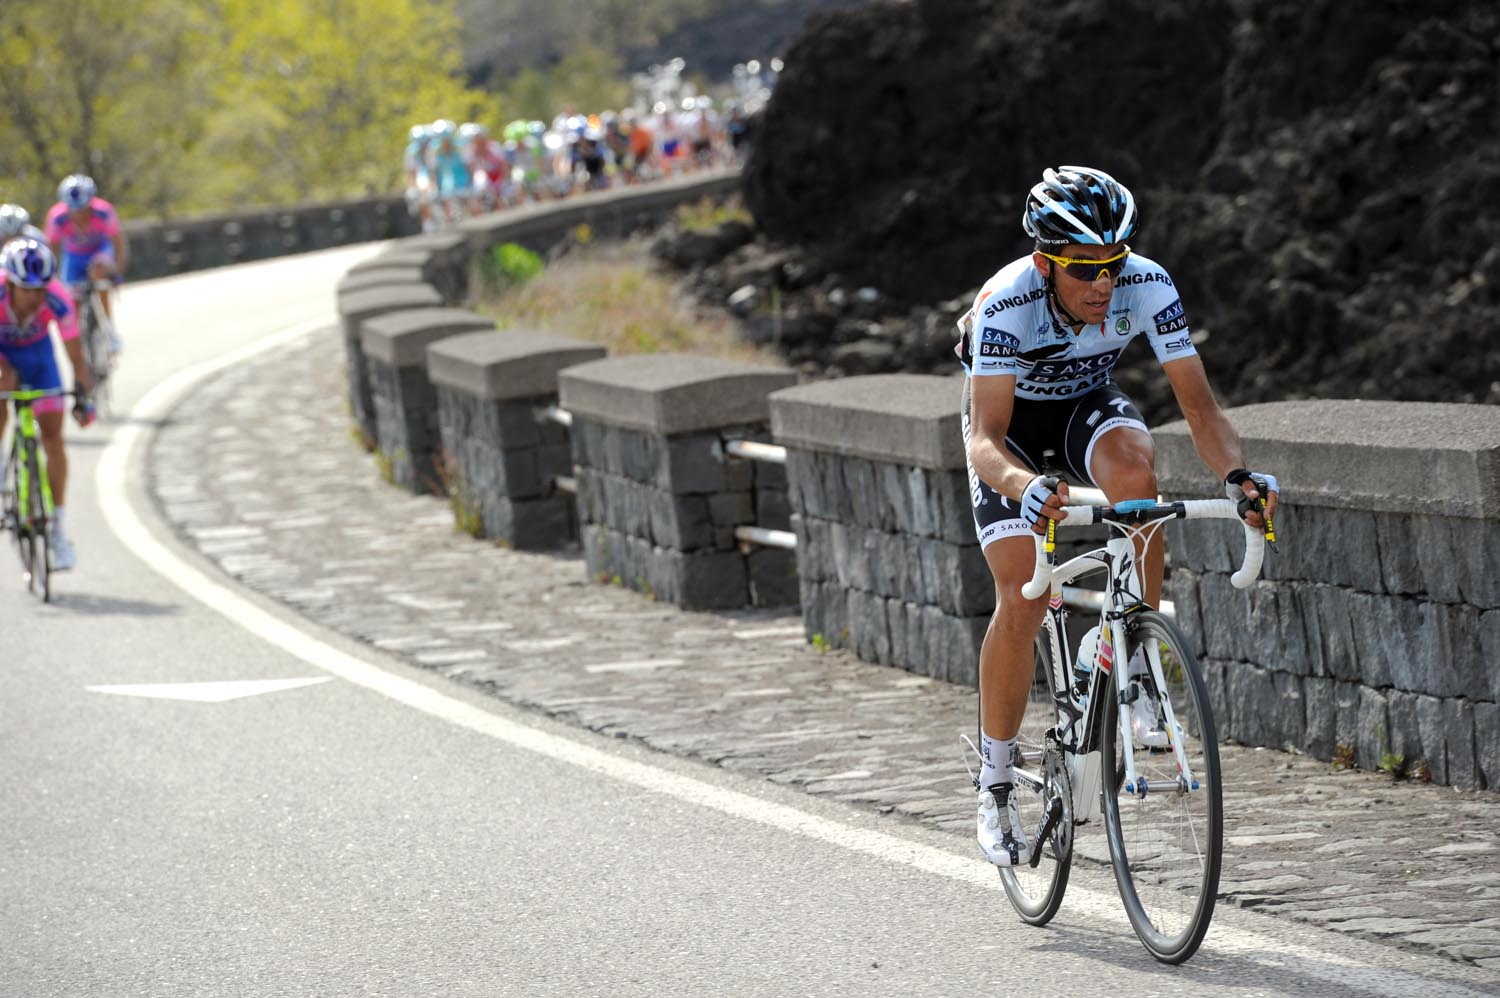 Alberto Contador attacks, Giro d